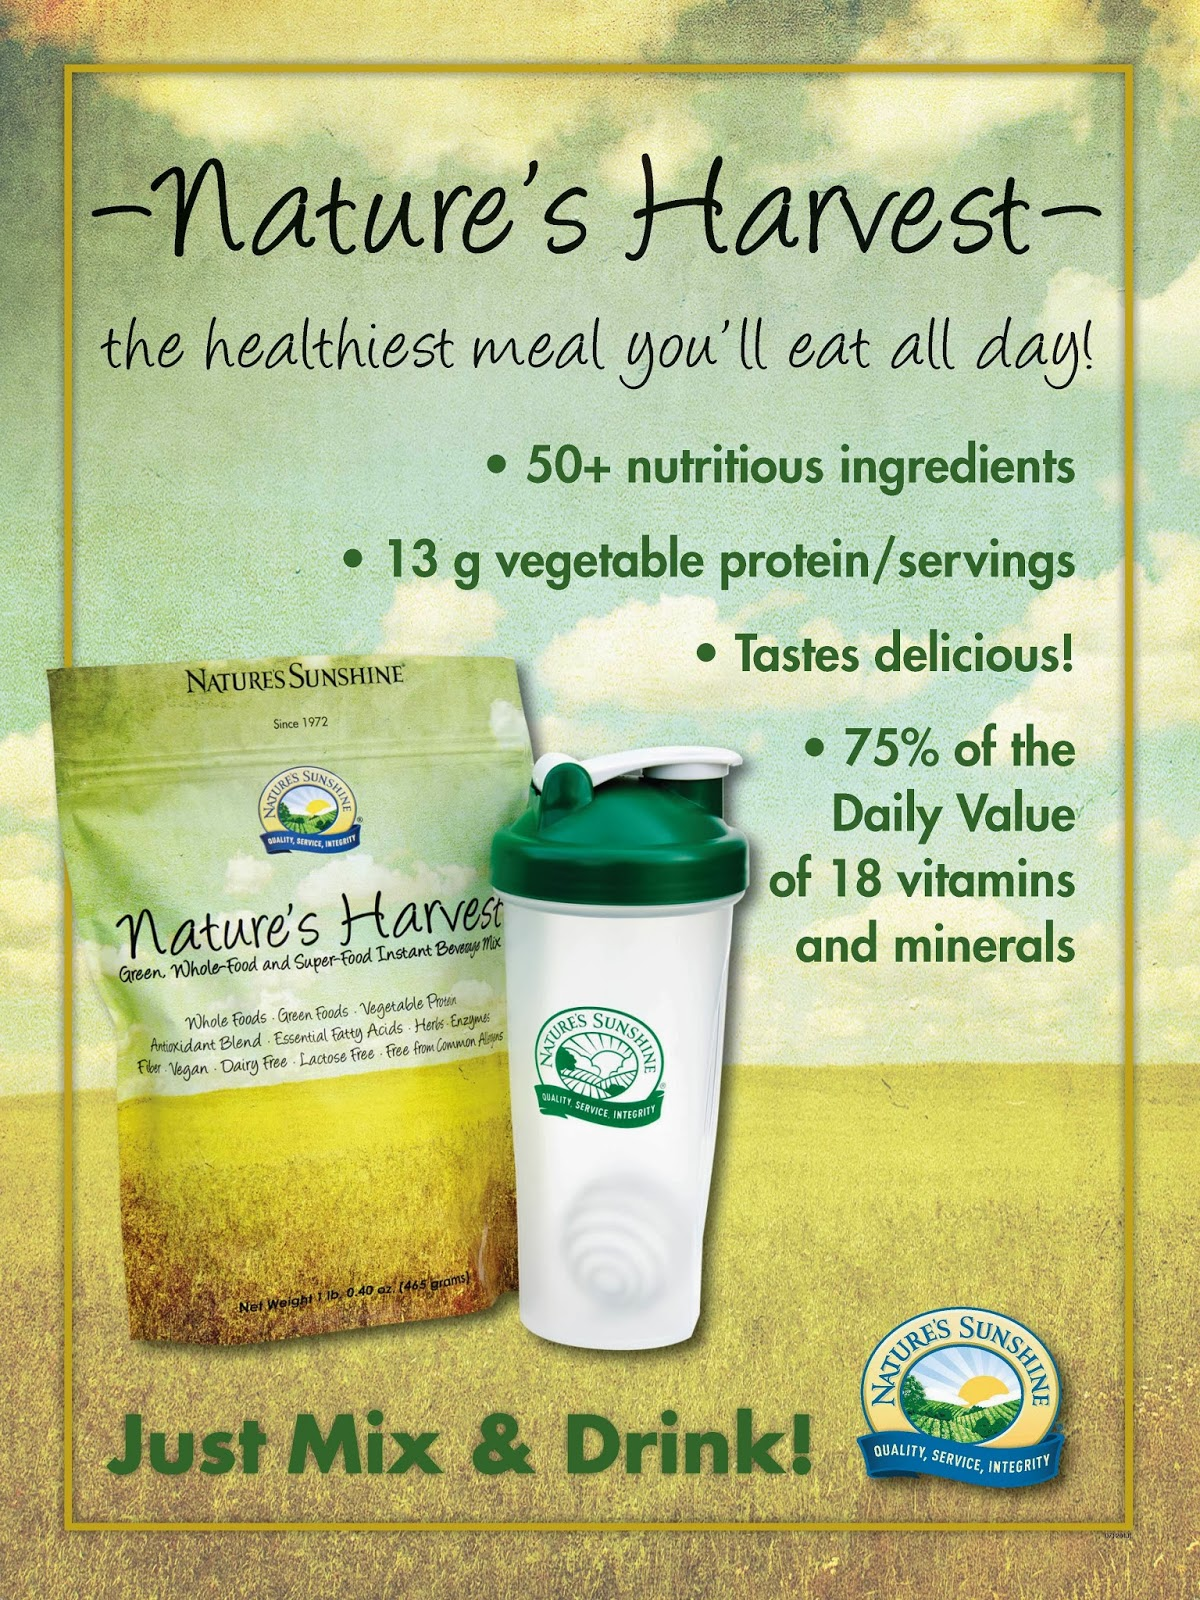 www.naturessunshine.com/us/products/product/?stockNumber=3090?sponsor=3201097